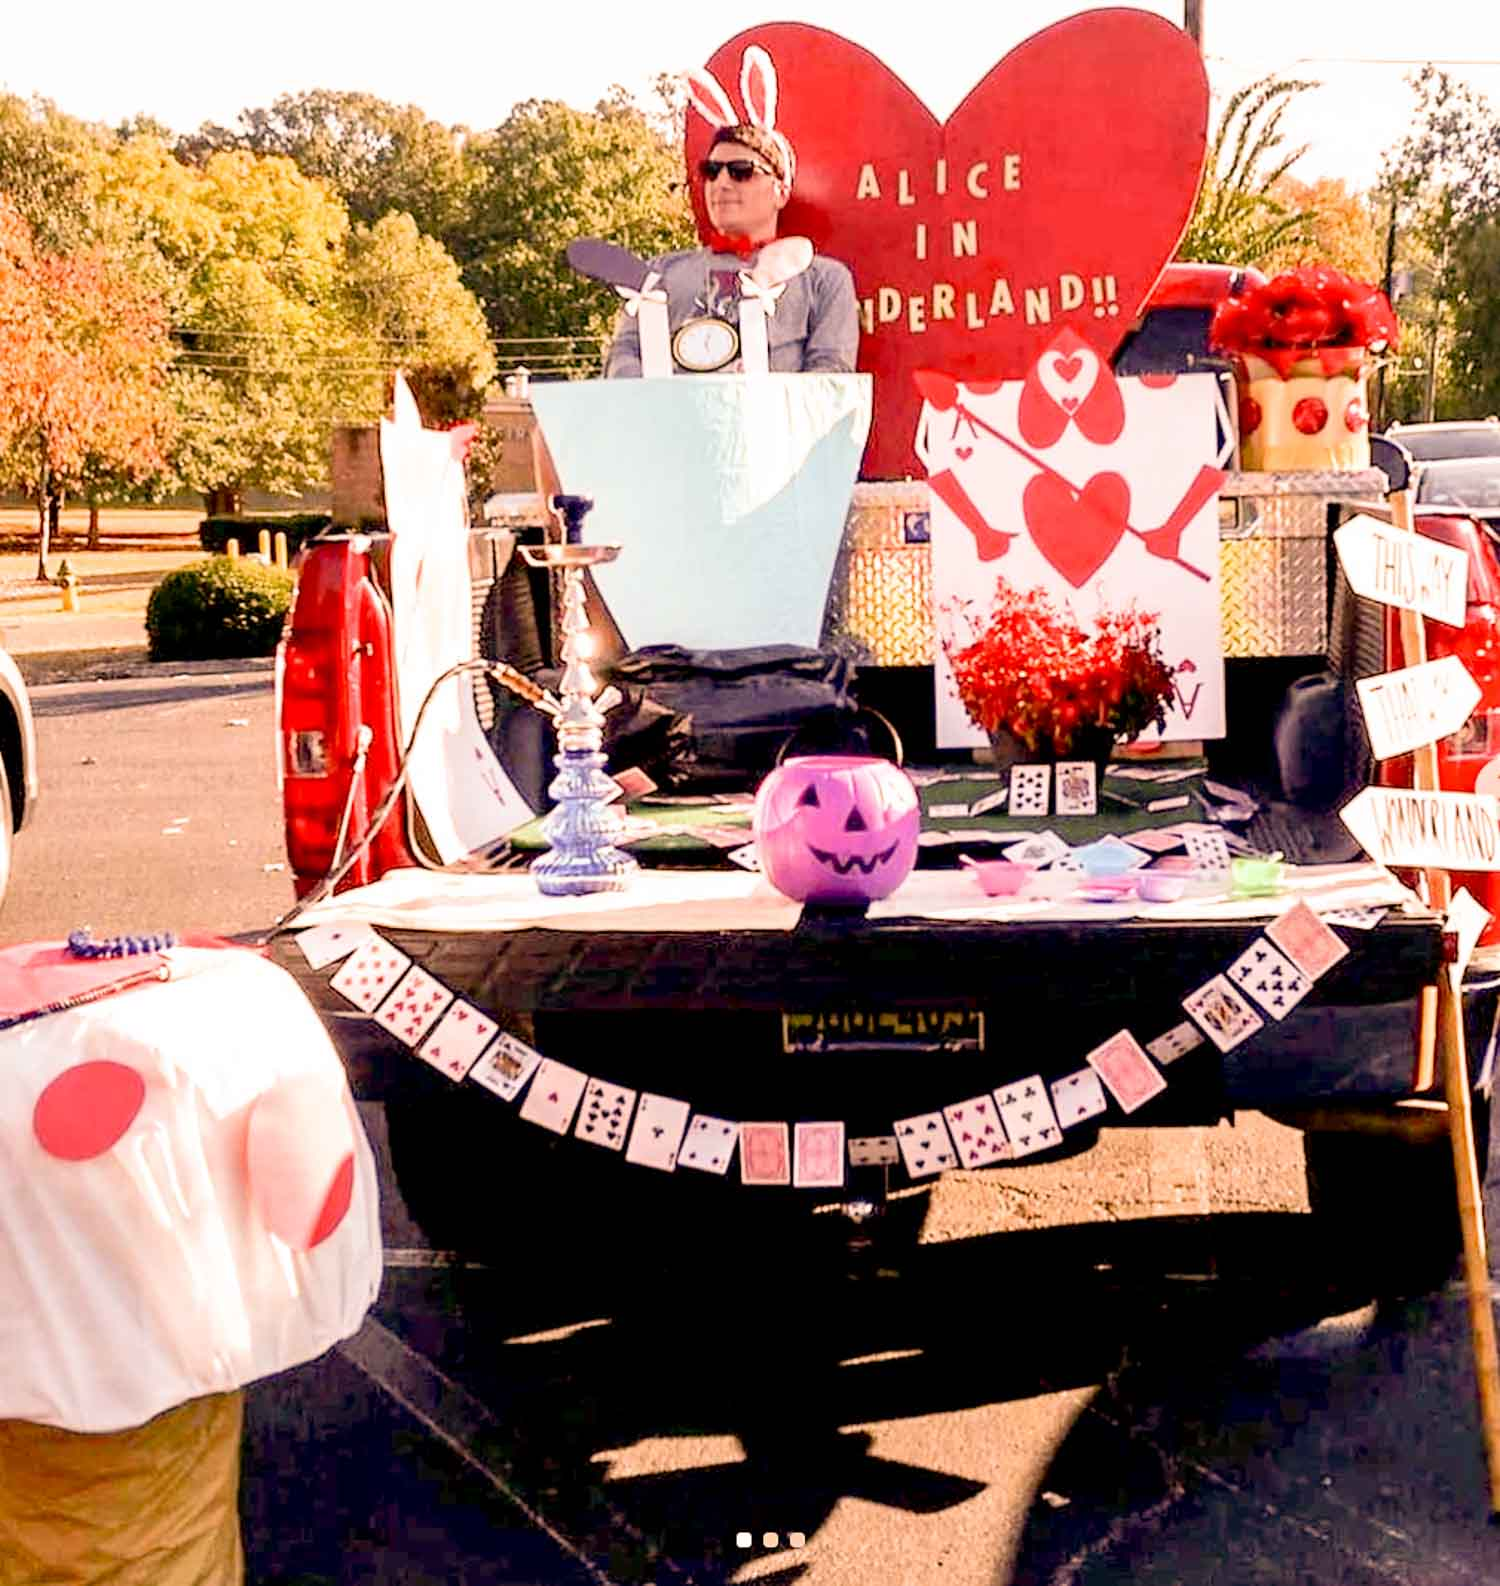 An Alice in Wonderland themed truck bed idea with a person dressed as the white rabbit in it.